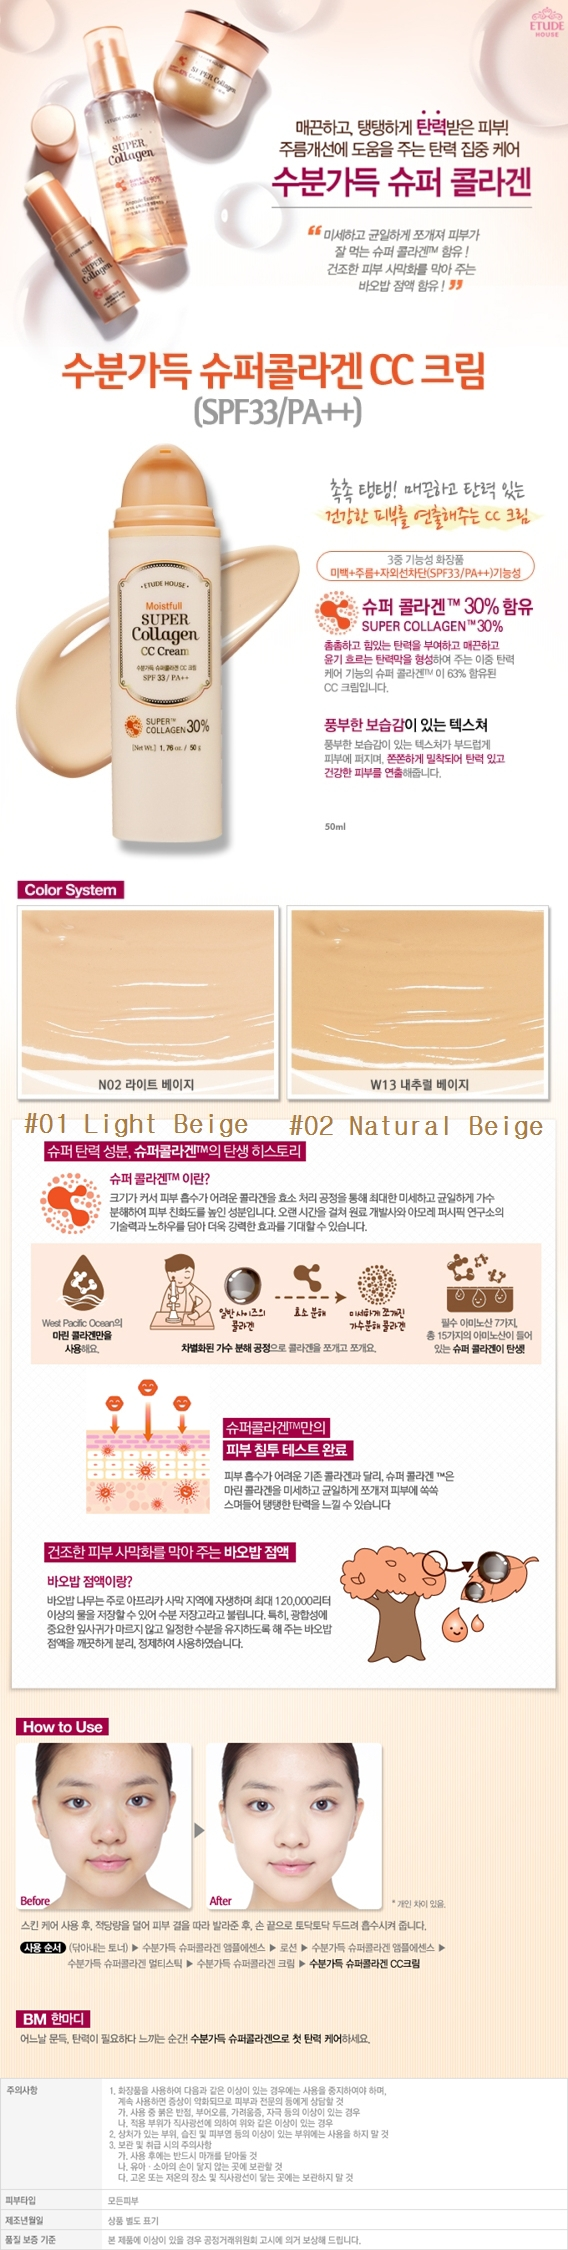 Etude House Newarrival 7 Samples Special Offers Cc Cream Returns Policy